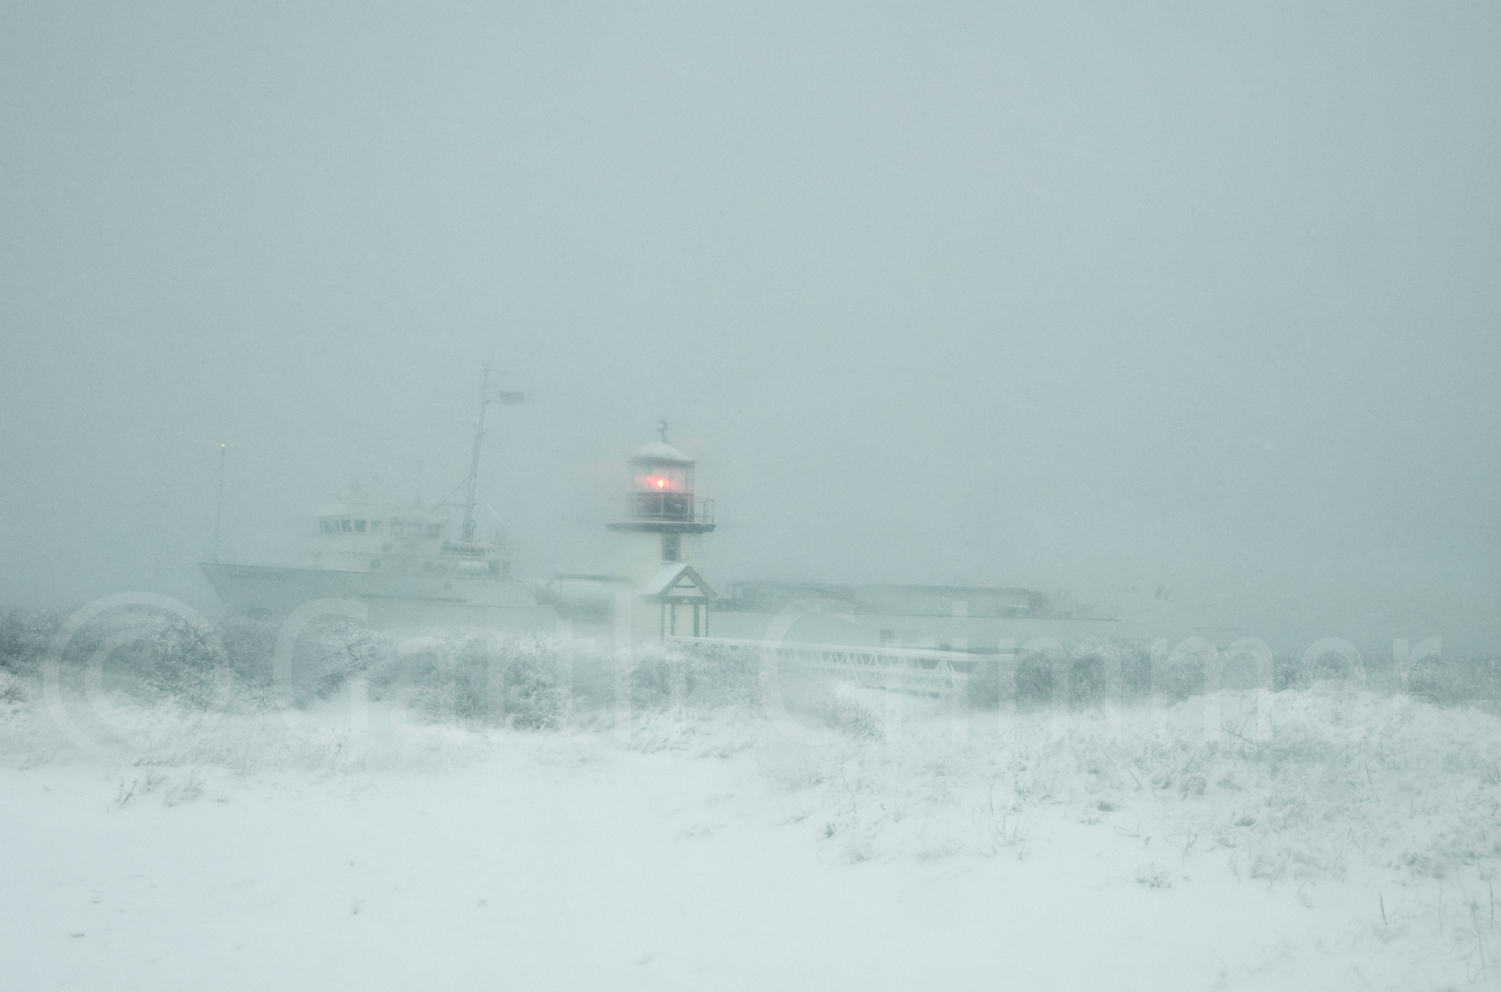 Supply boat in snow storm